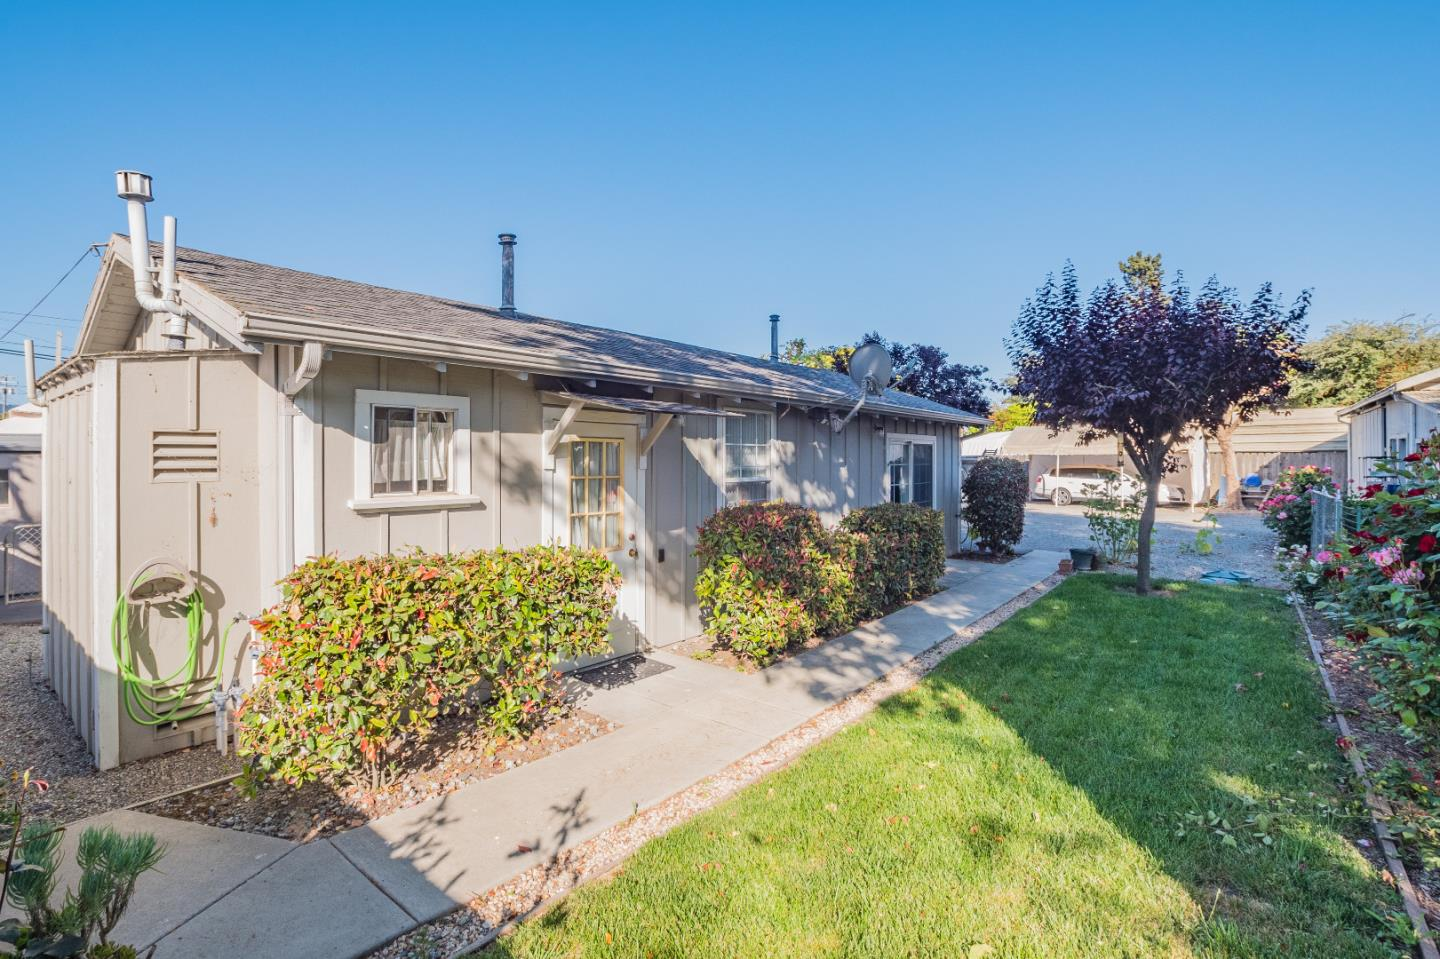 Detail Gallery Image 1 of 1 For 2307 Freedom Blvd, Watsonville, CA, 95076 - – Beds   – Baths